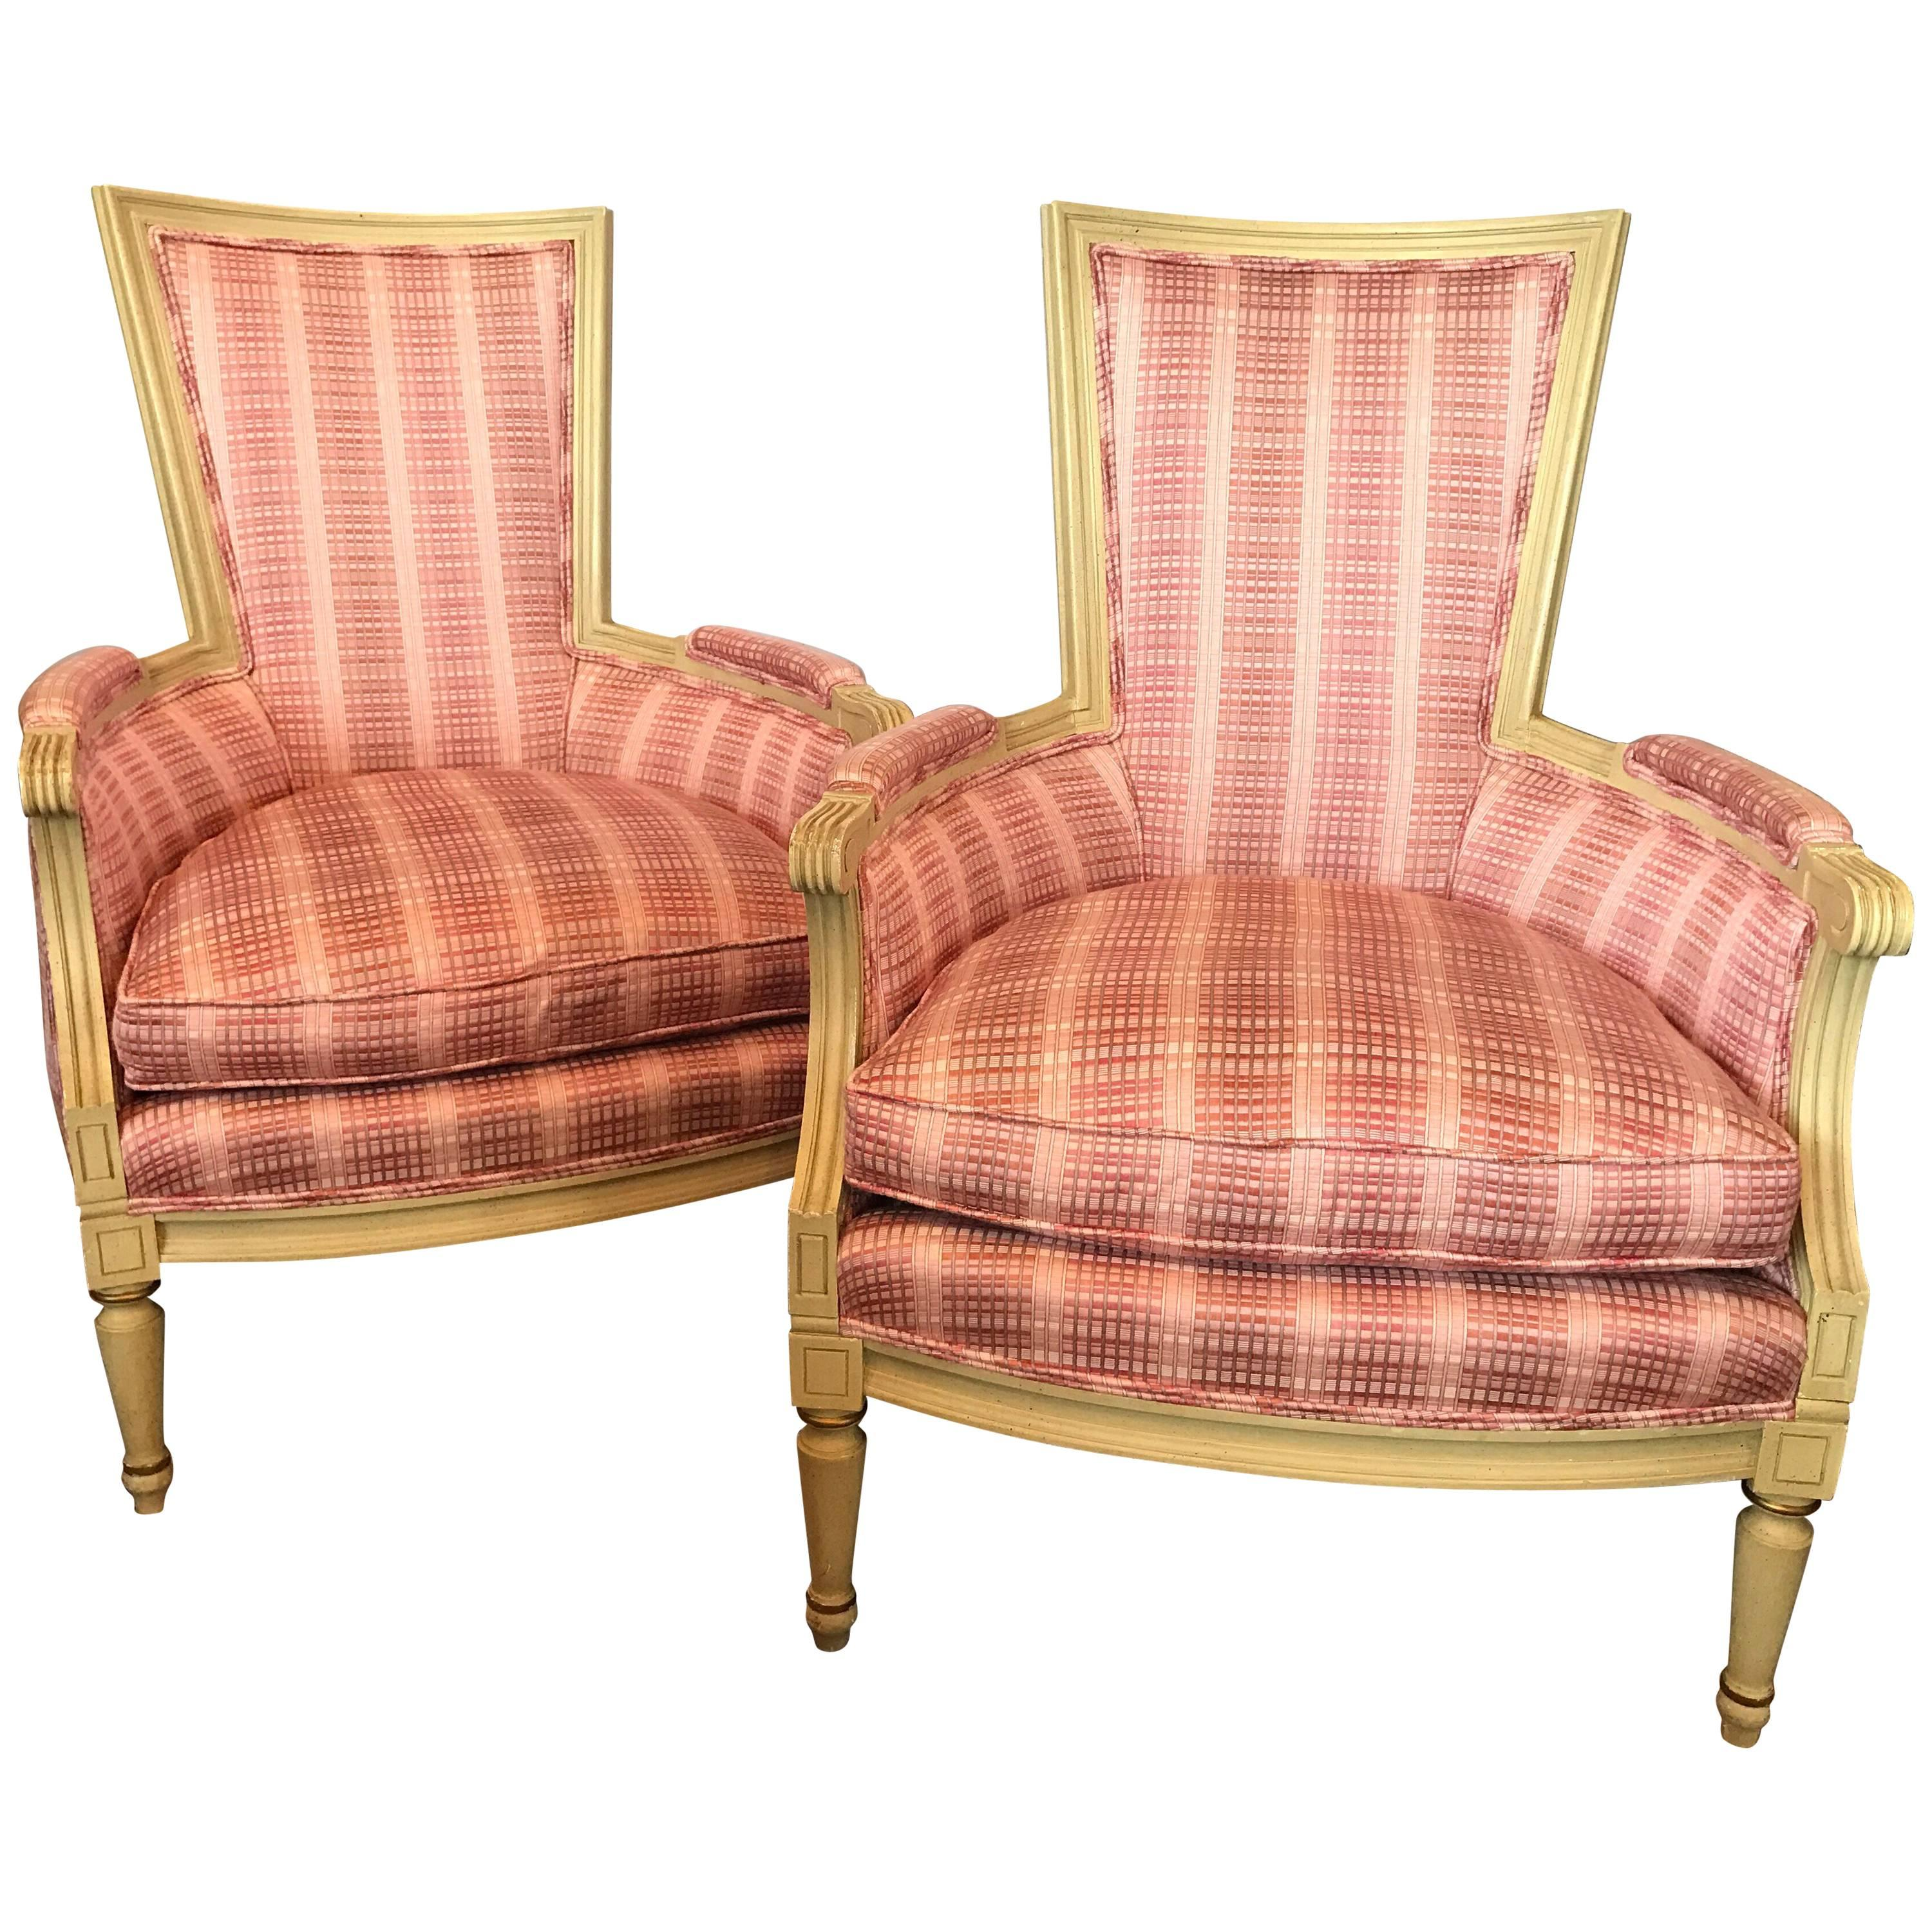 French Provincial Seating